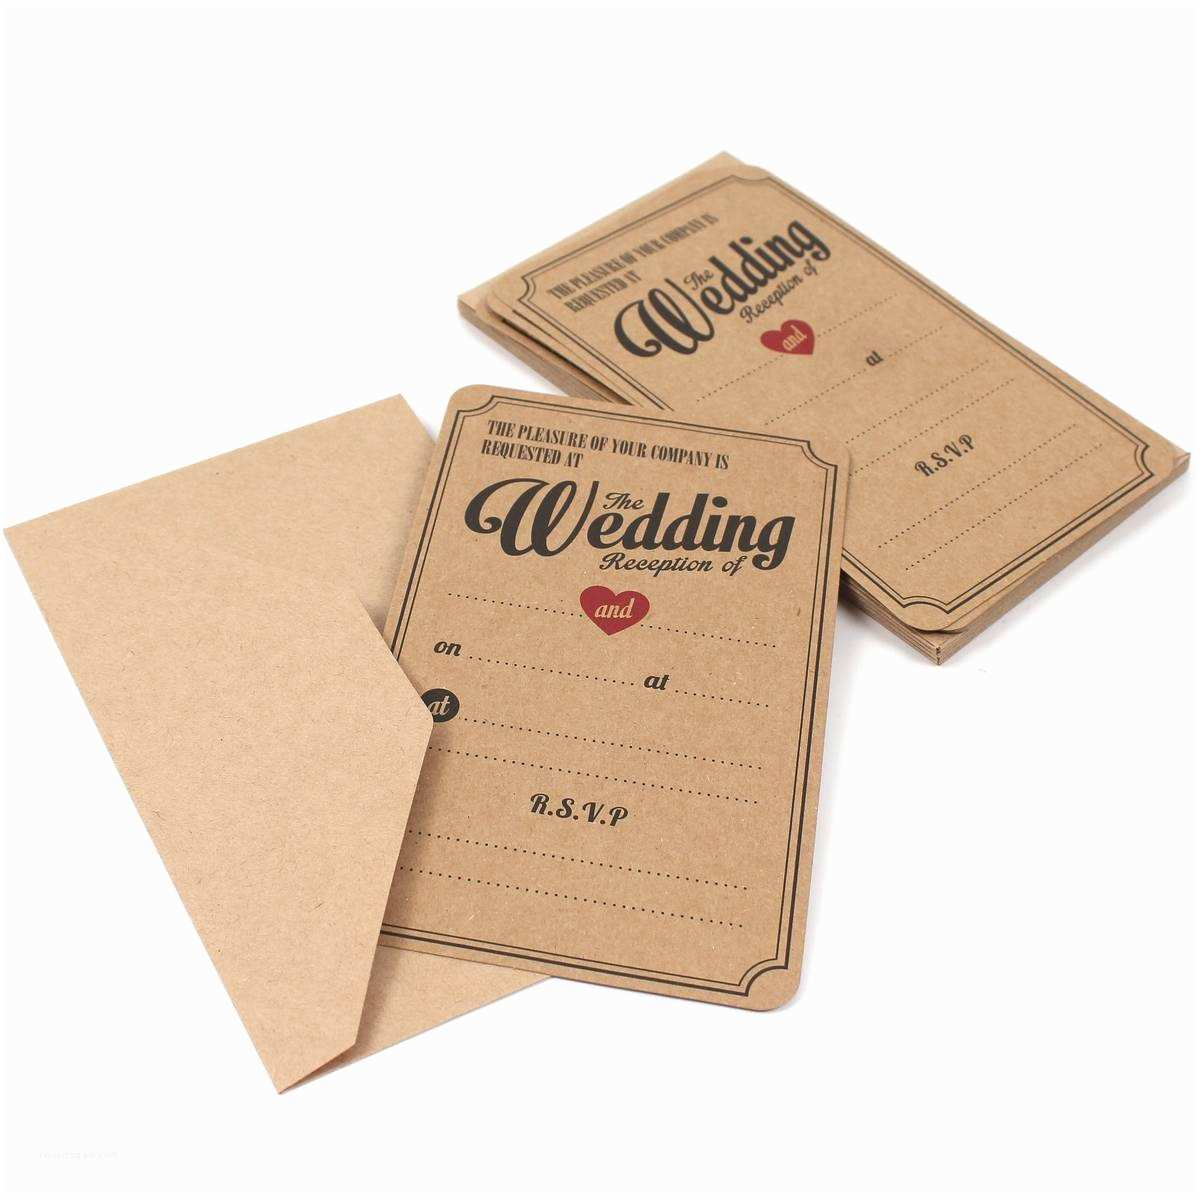 Wedding Invitations Cheap Packs Vintage Affair evening Wedding Invitations Pack and